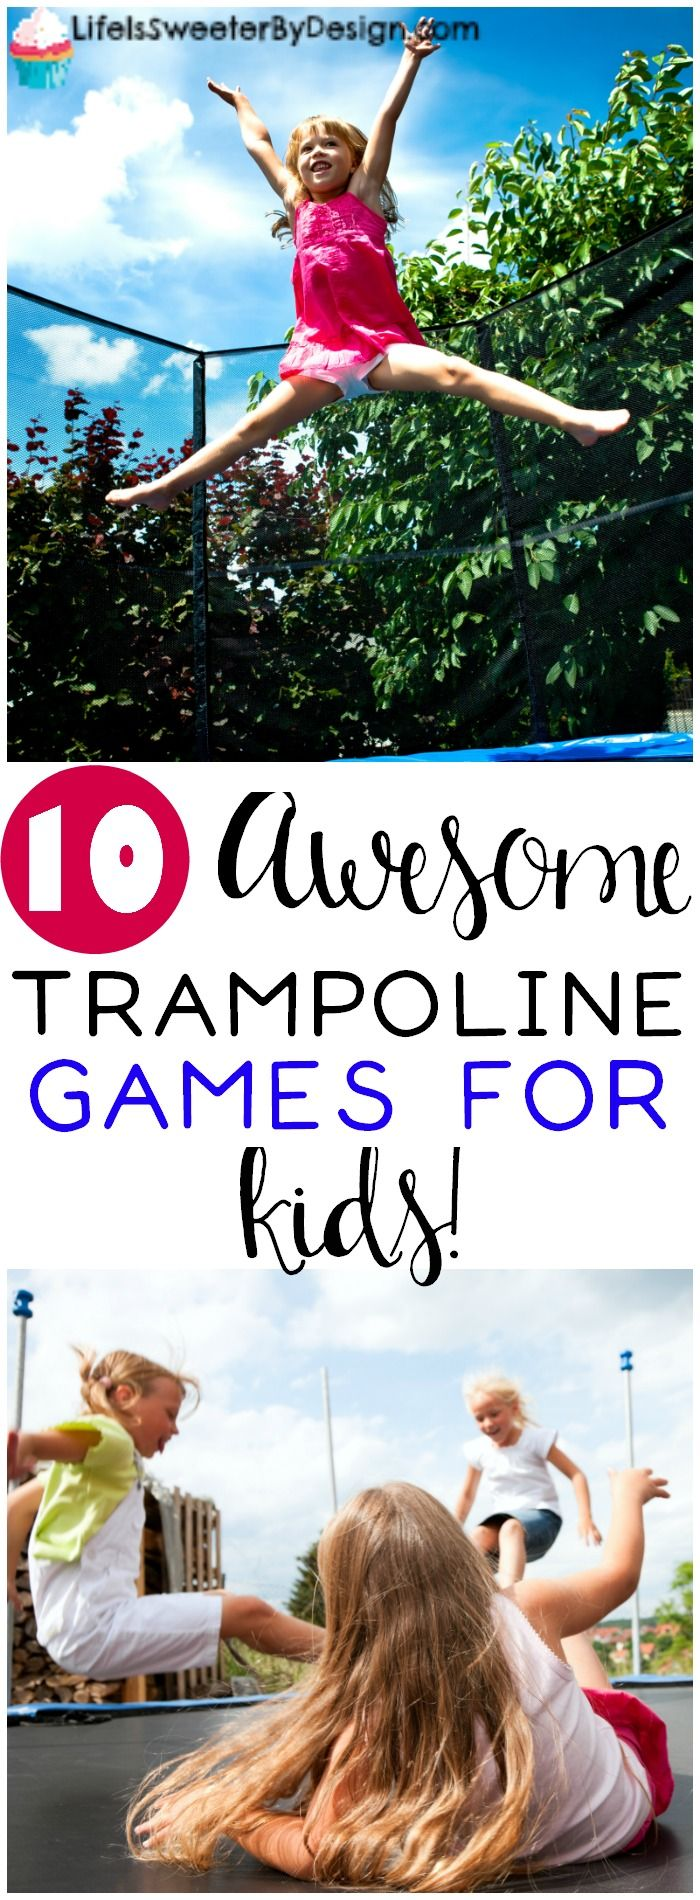 These 10 trampoline games for kids will keep them busy having fun this summer. These games are easy to play and great for all ages.